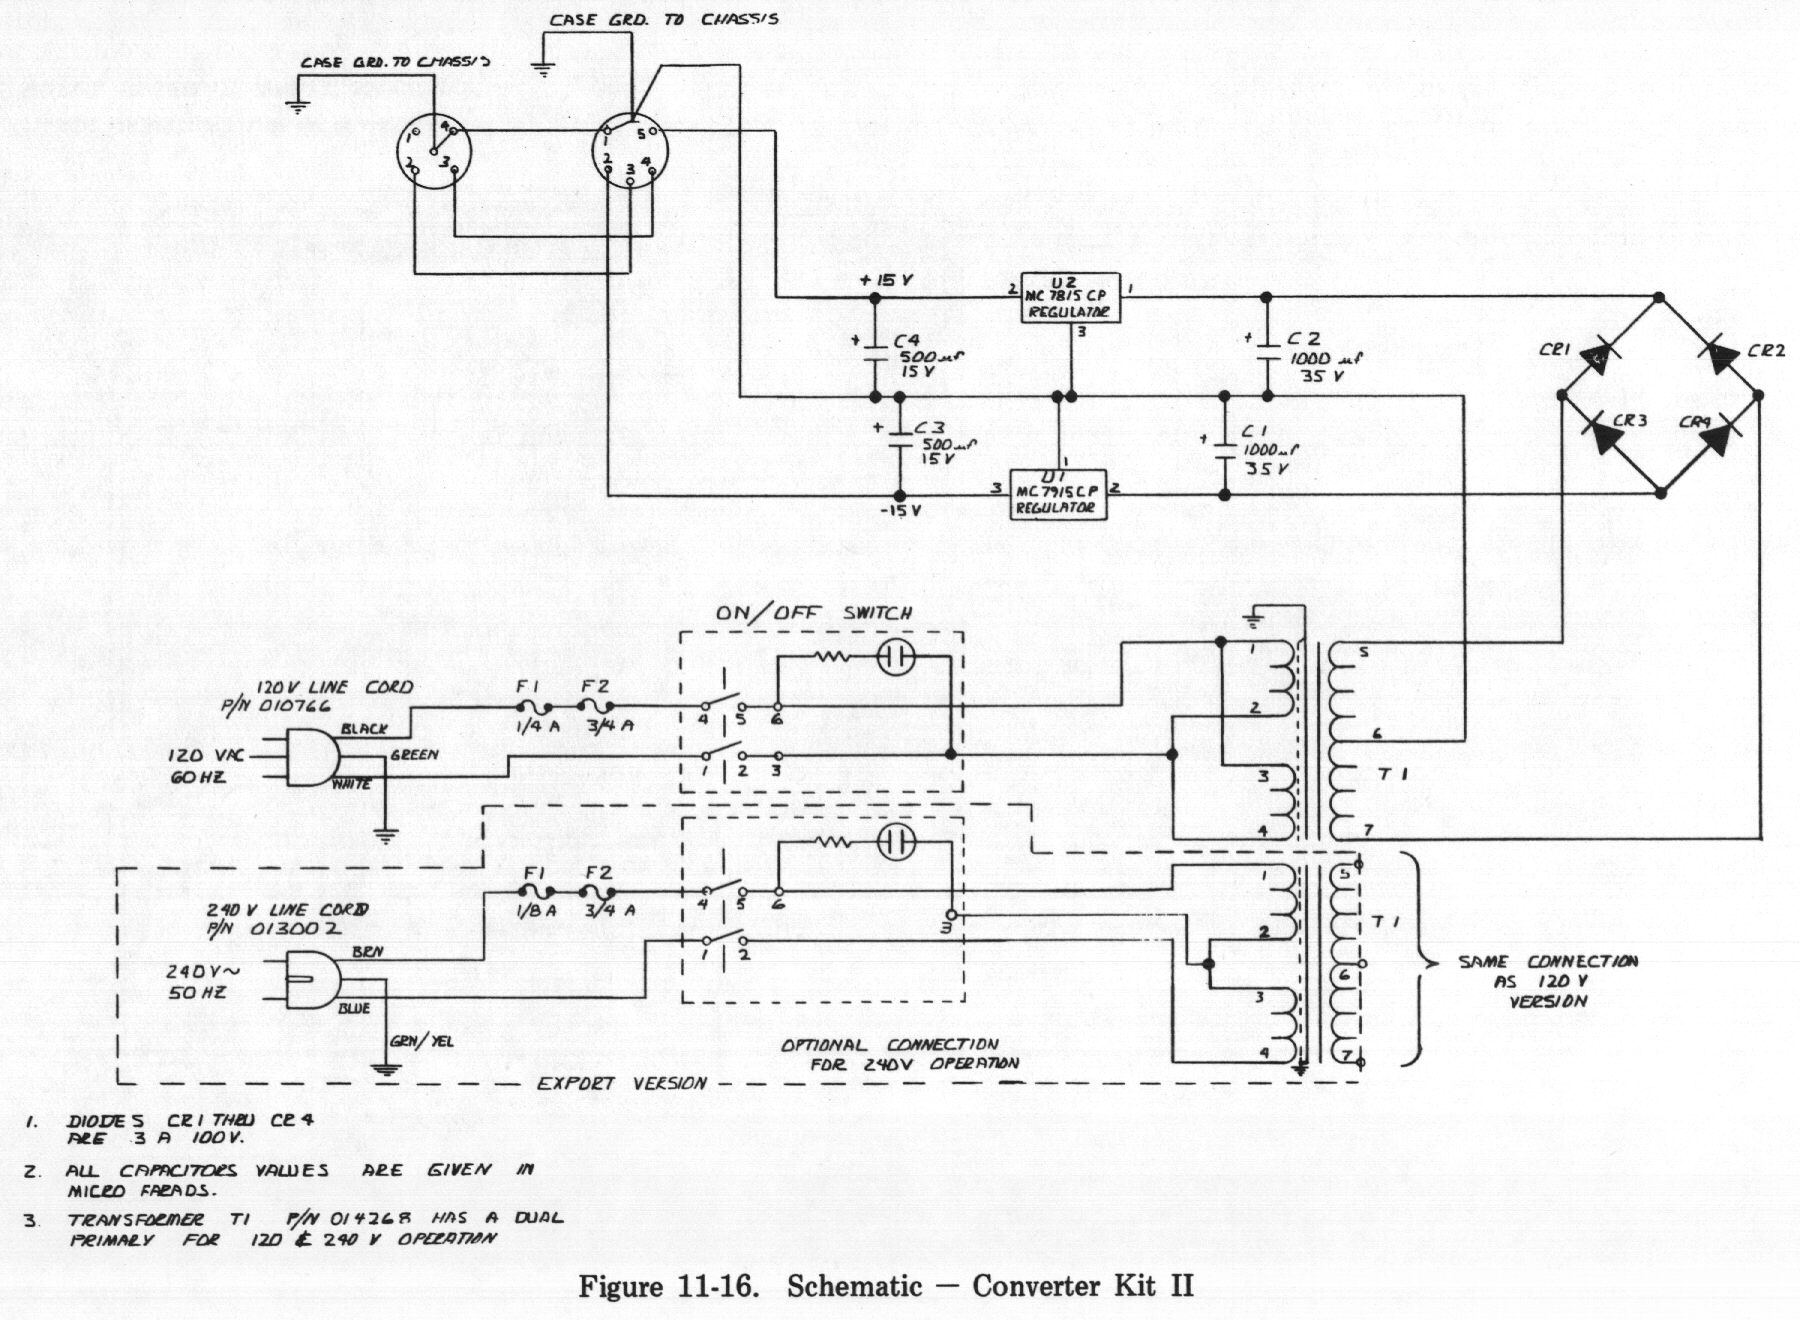 Rhodes Service Manual Table Of Contents Figure 11 Structural Schematic Diagram Transformer 16 Converter Kit Ii